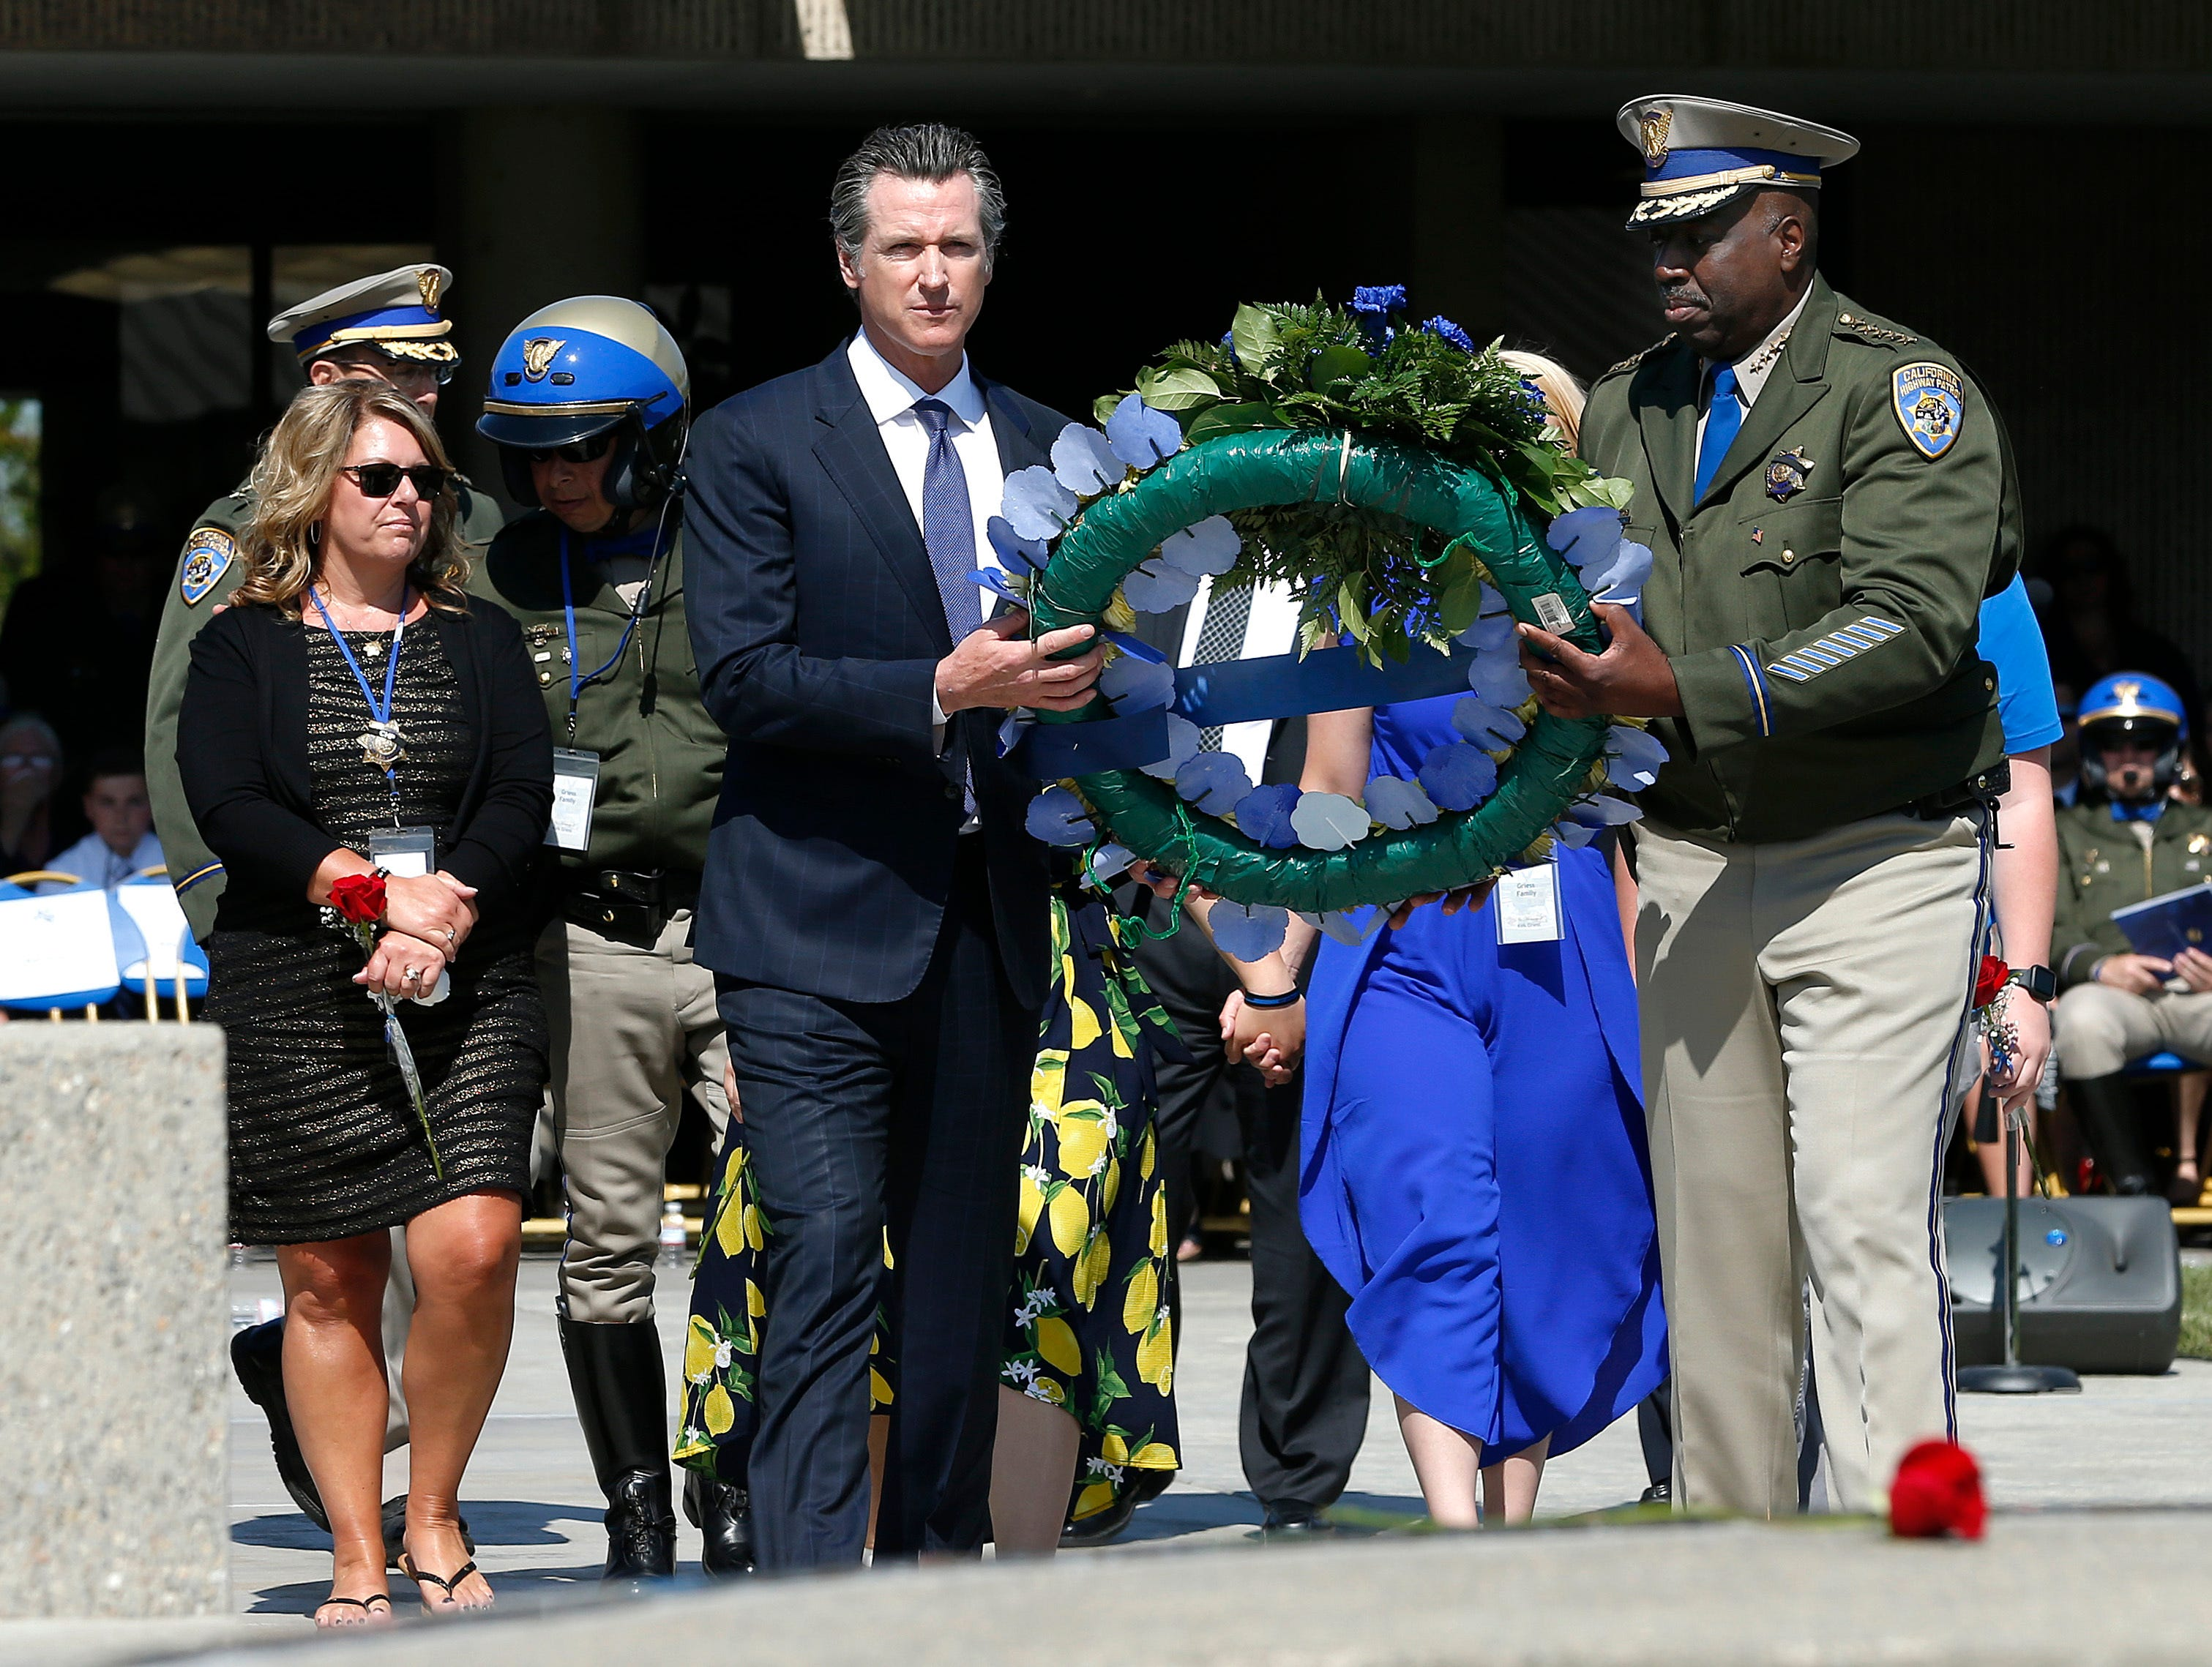 Gov. Gavin Newsom, center left, and California Highway Patrol Commissioner Warren Stanley, right, carry a wreath to the California Highway Patrol Memorial where the name of CHP Officer Kirk Griess was added during a ceremony at the California Highway Patrol Academy, Tuesday, May 7, 2019, in West Sacramento. Kirk Griess was struck and killed by a vehicle while conducting a traffic stop on Aug. 10, 2018. Keri Griess, the wife of Officer Griess follows behind at left.